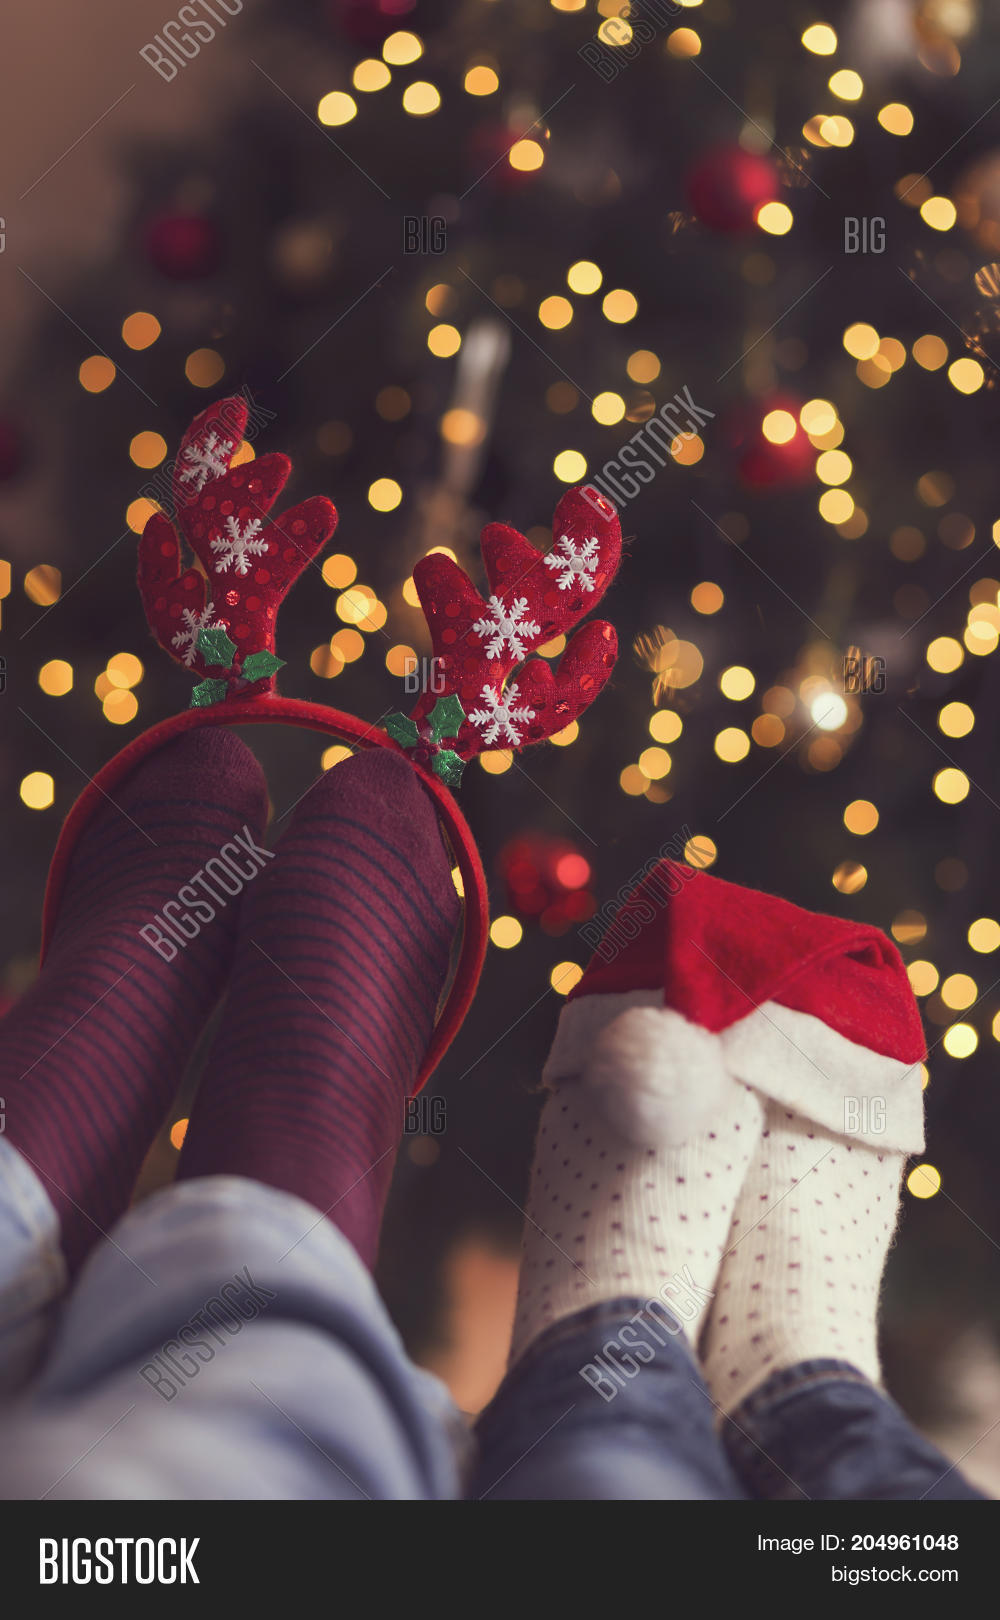 e8f1e294b52 Detail of male and female feet wearing warm winter socks with small Santa s  hat and antlers